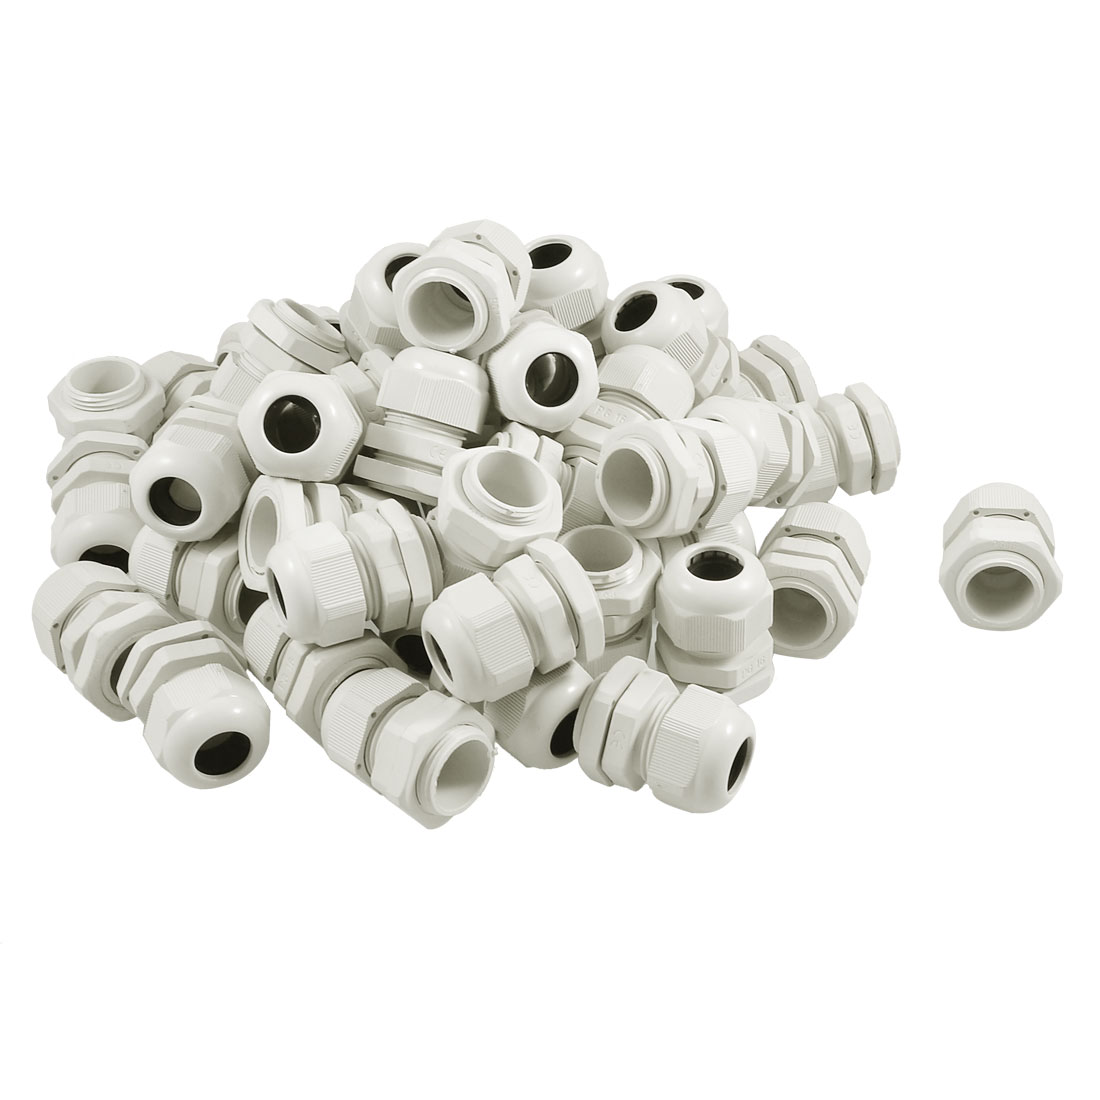 White Plastic P16 IP67 Waterproof Cables Glands Connector 50 Pcs